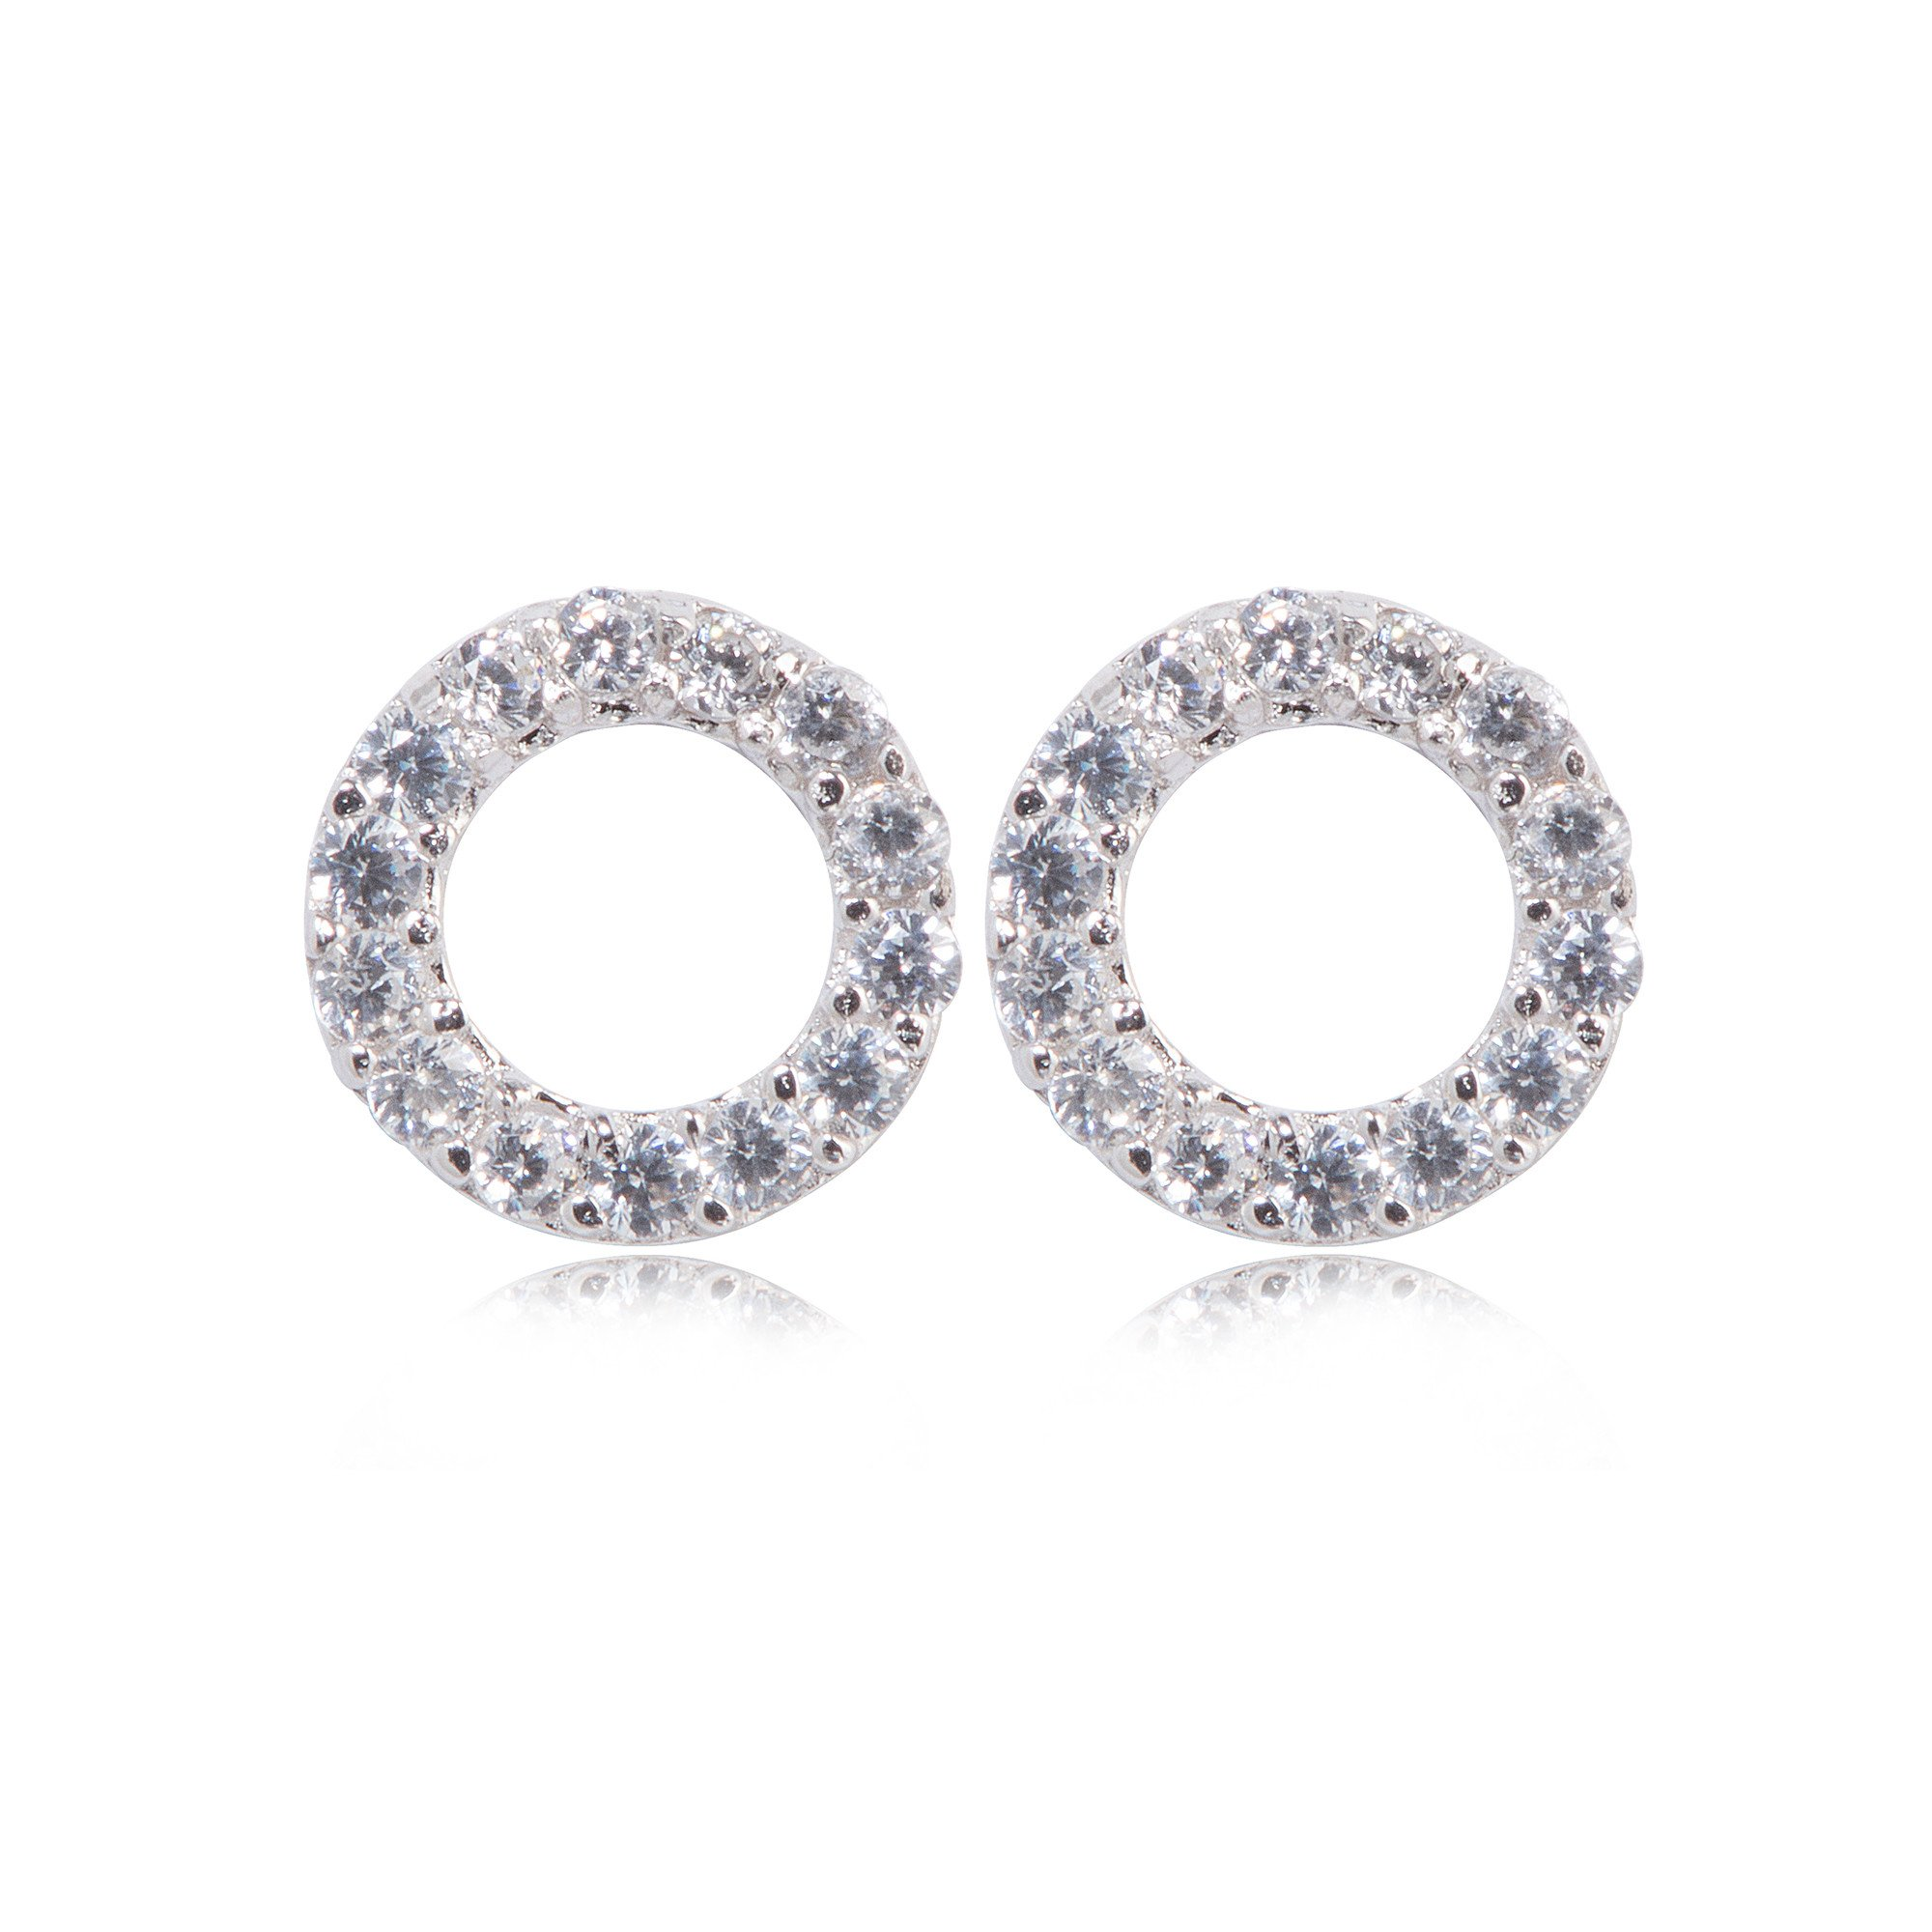 Stud Earrings Pave Open Circle CZ - Sterling Silver EG-45/S